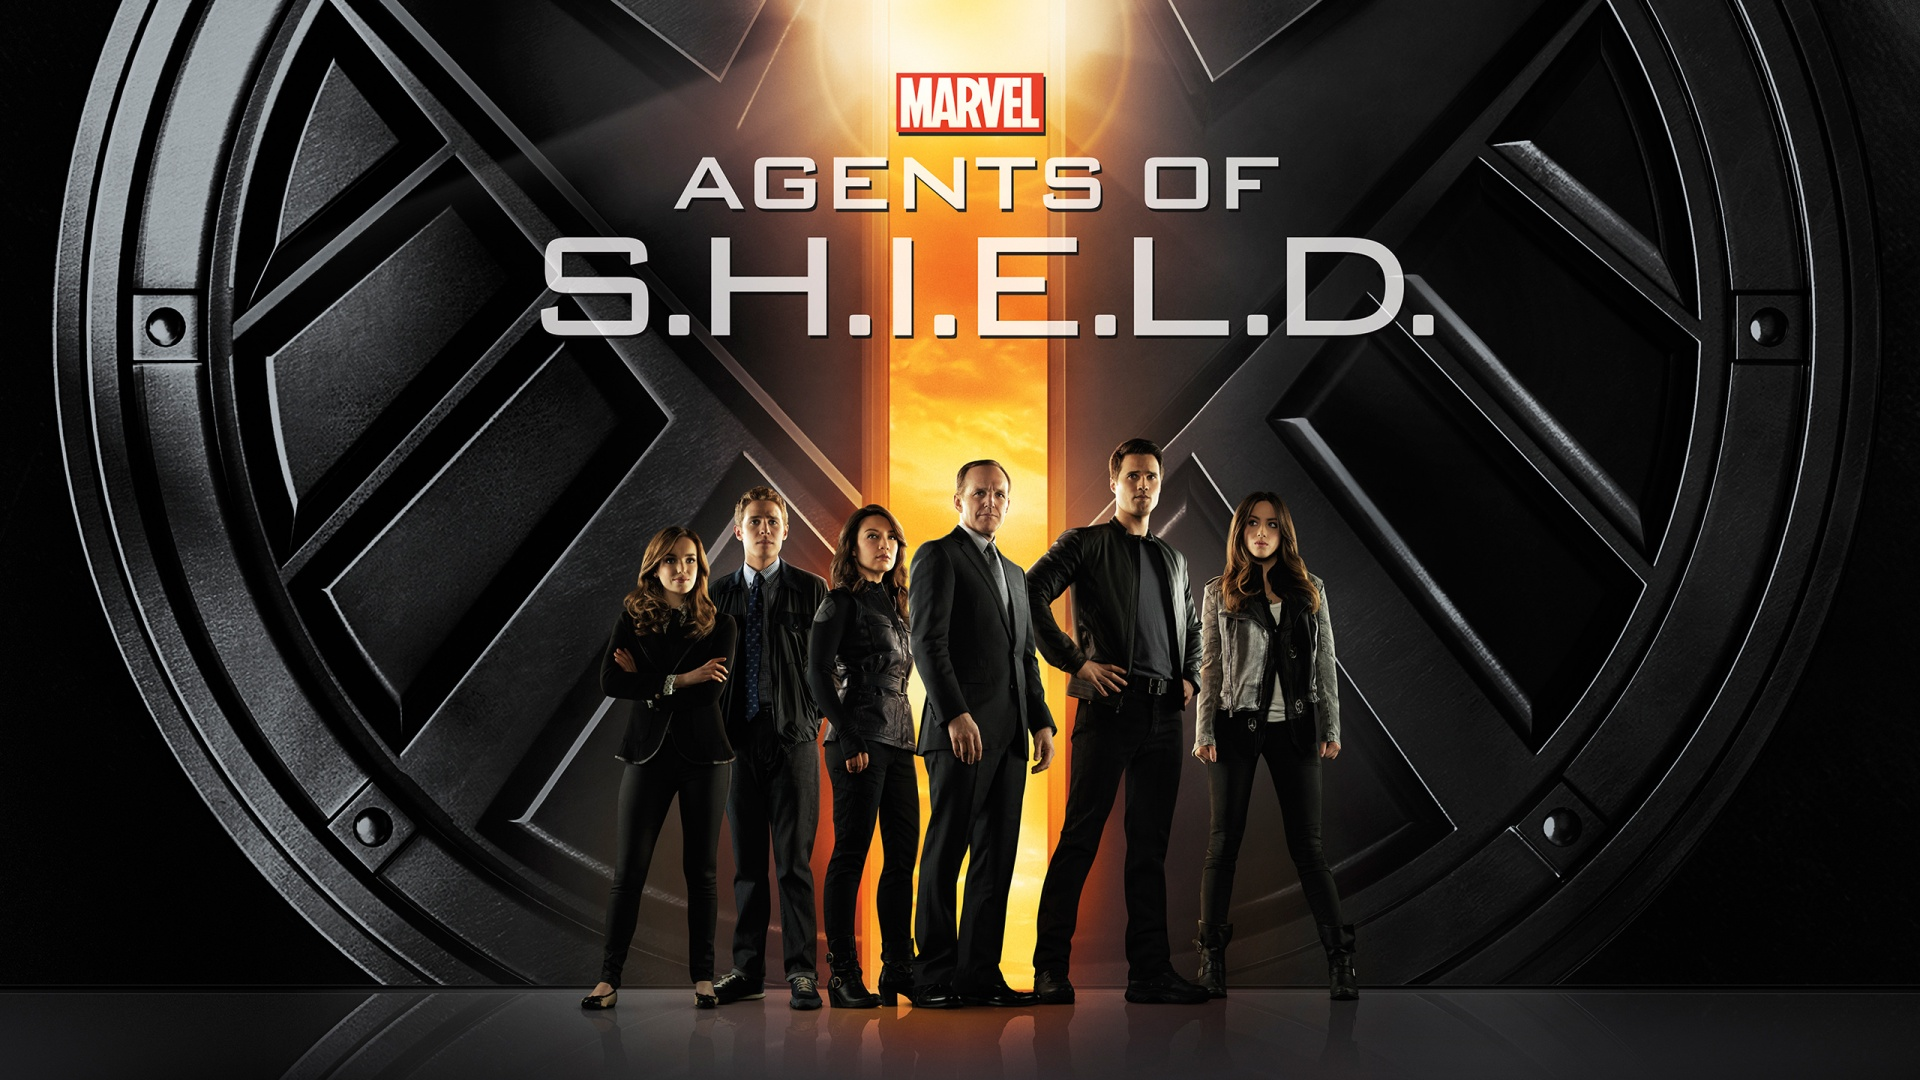 Agents of SHIELD Wallpapers HD Wallpapers 1920x1080